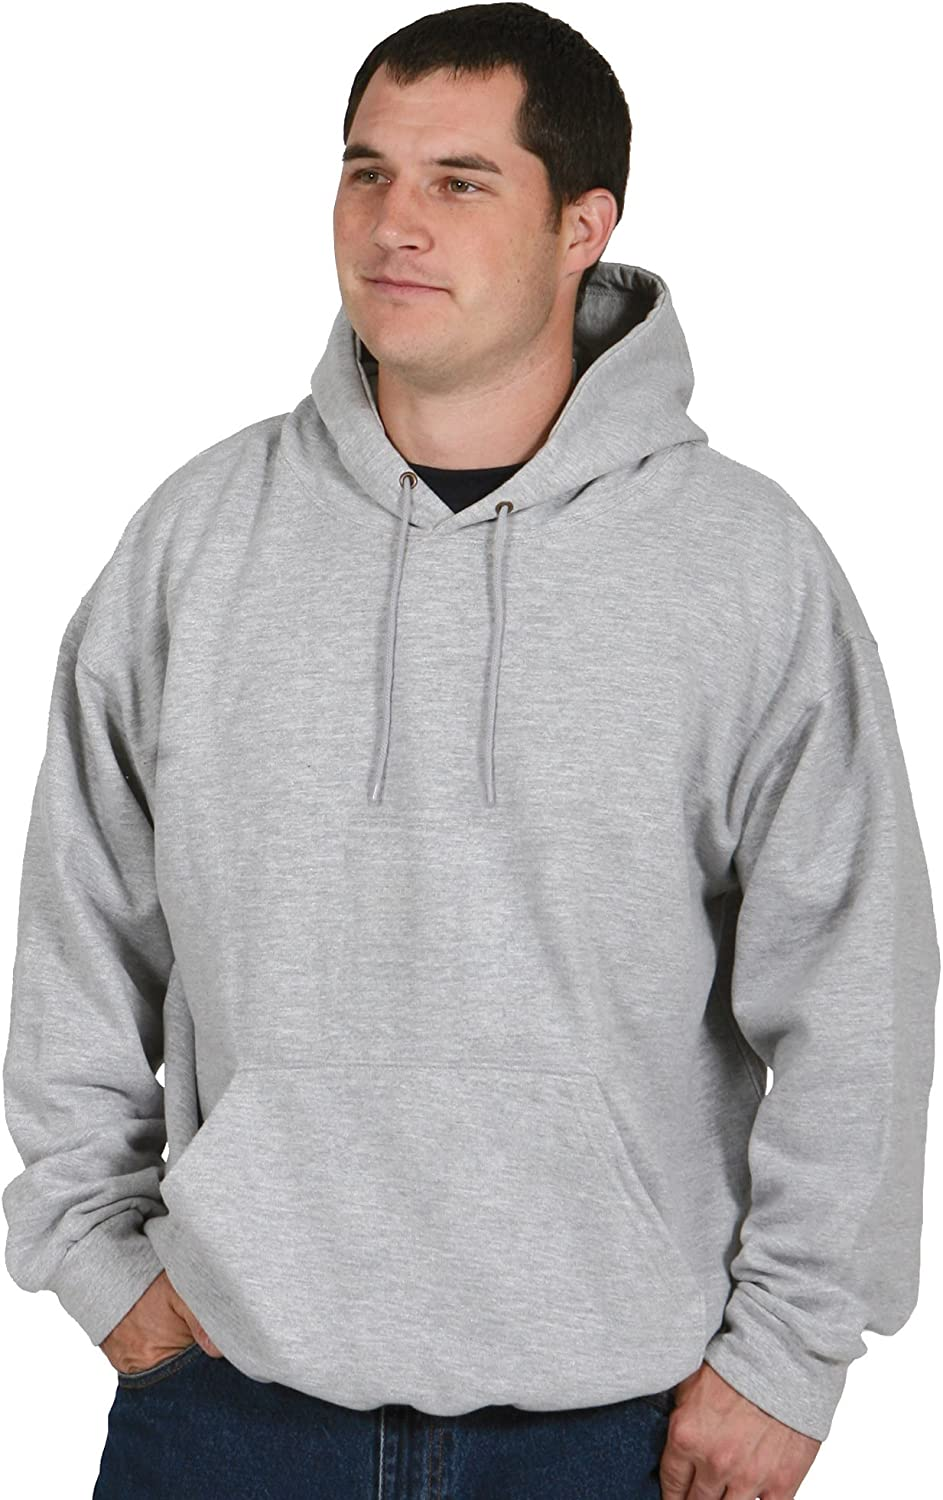 Five Rock Thermal Lined Pullover Sweatshirt